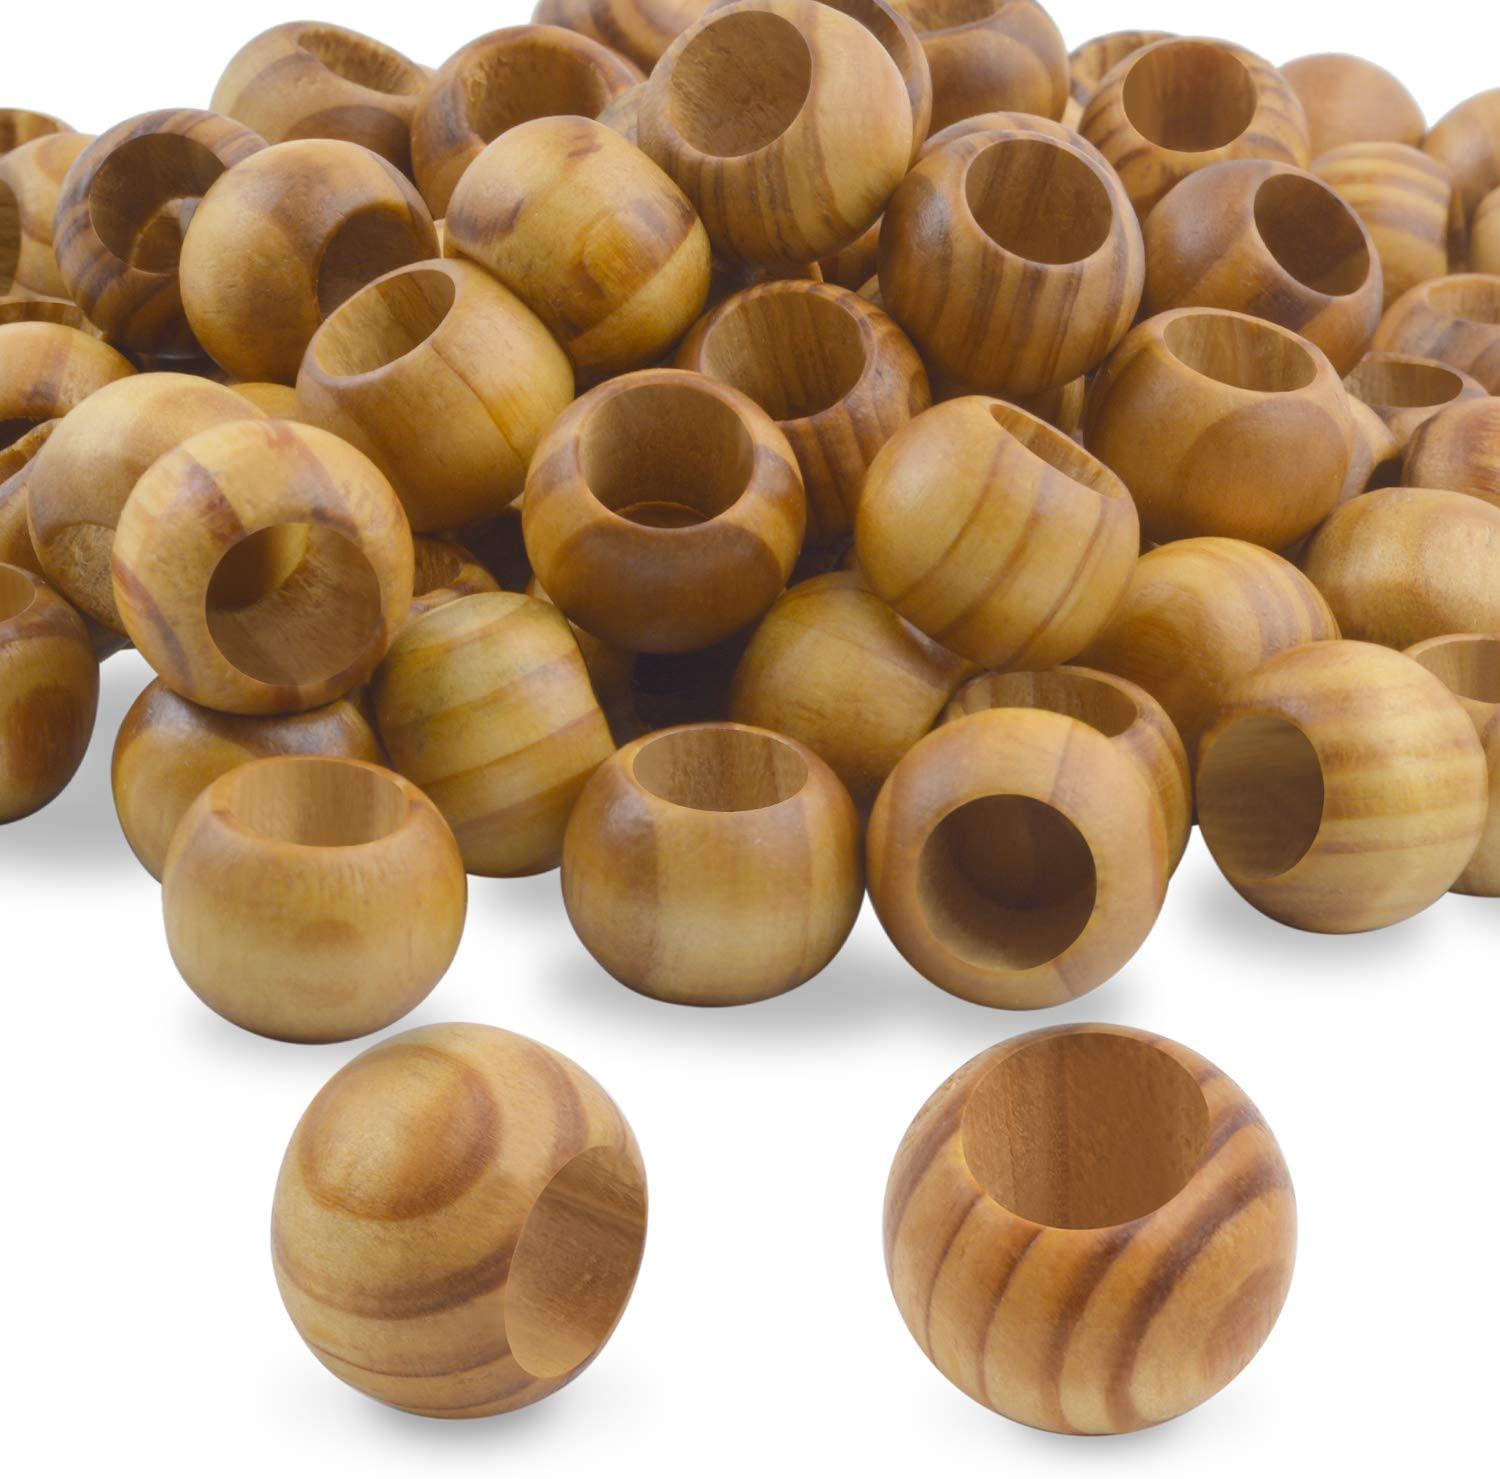 20mm 0.78 inch Small Wood Doll Head Beads with Faces 100 Pieces